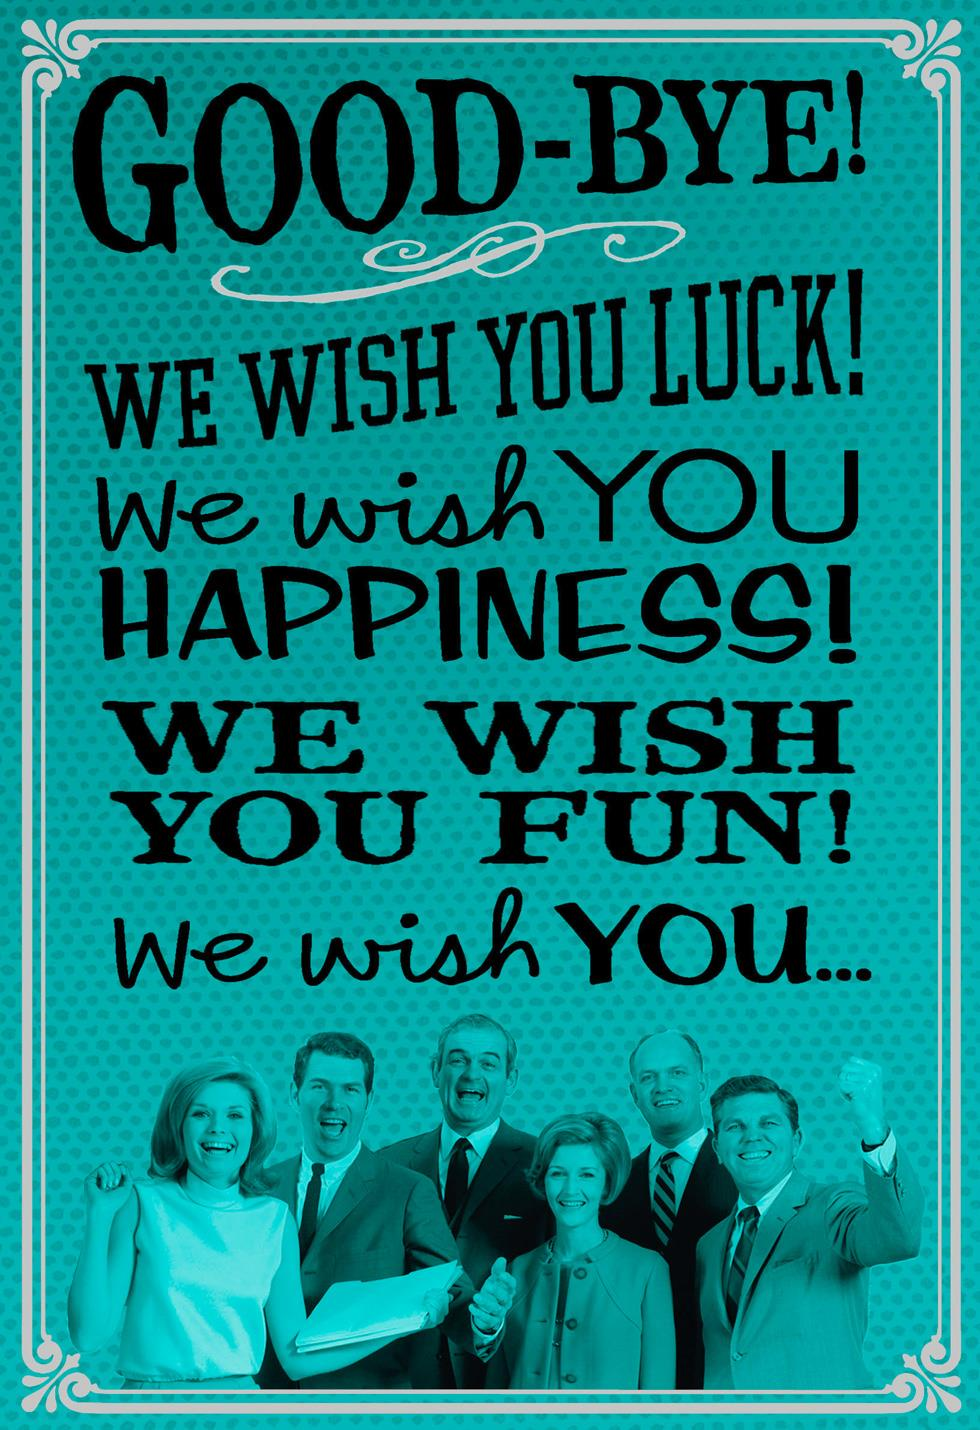 we wish you weren't going goodbye card from group